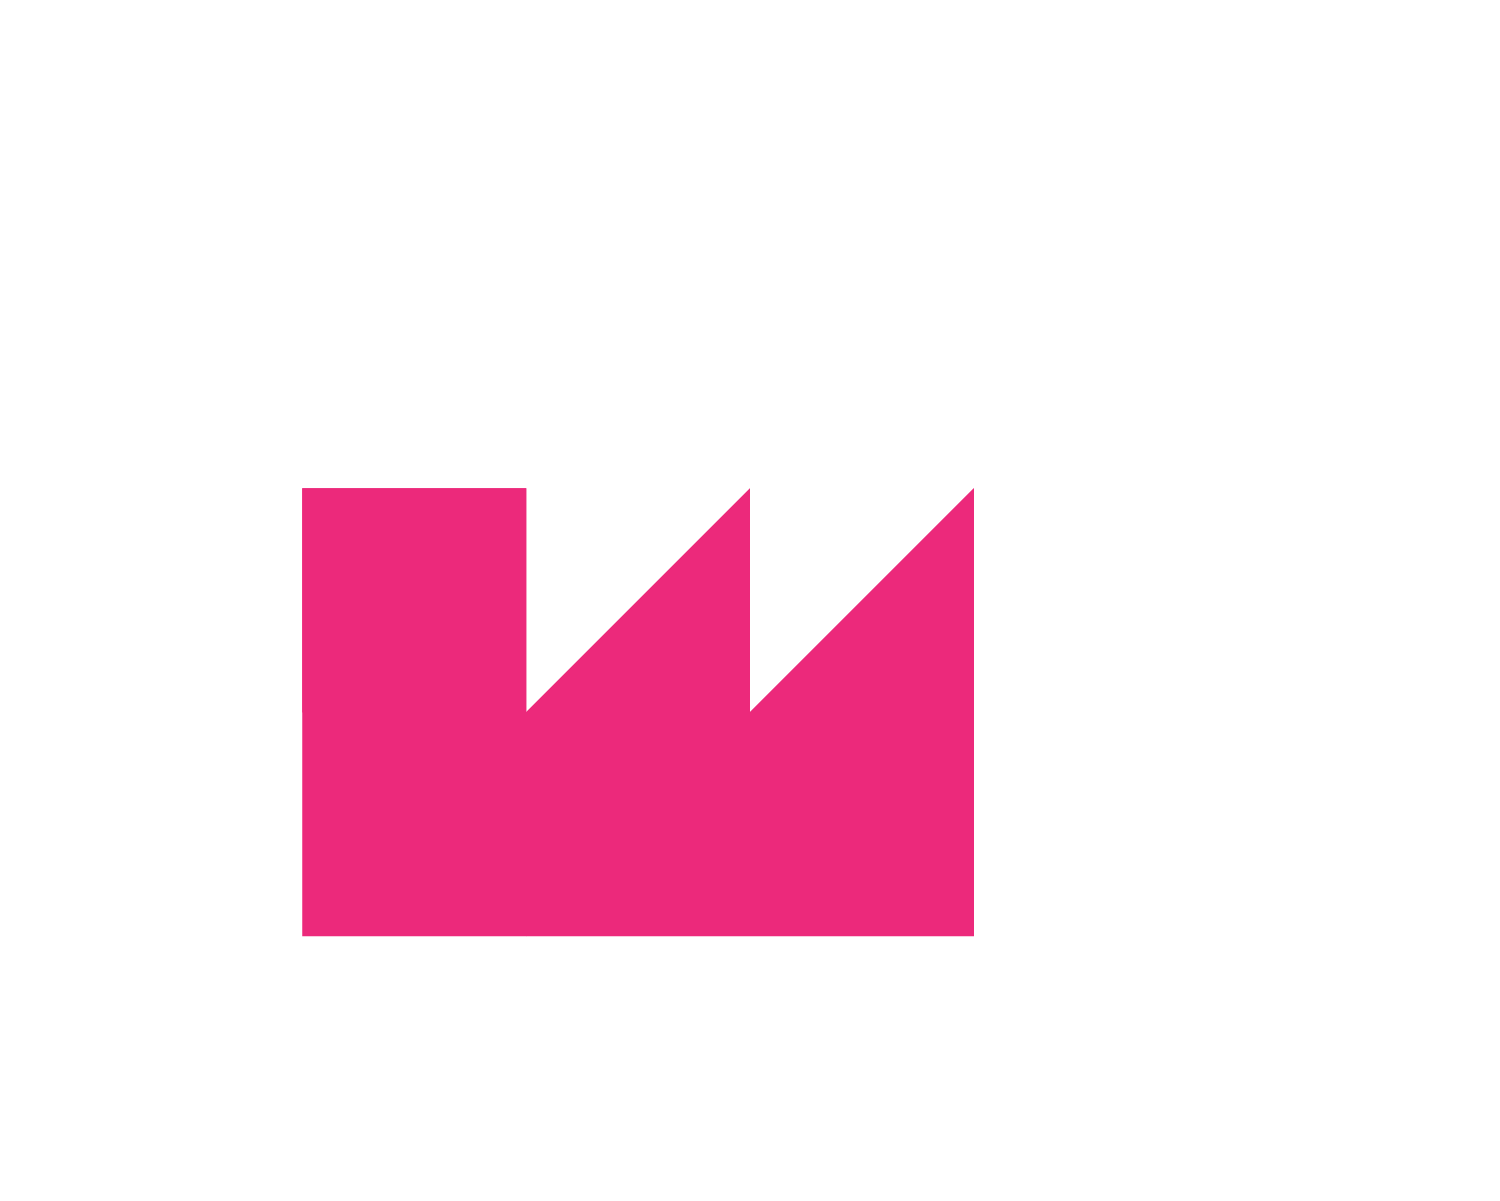 logo-architecture-25.png